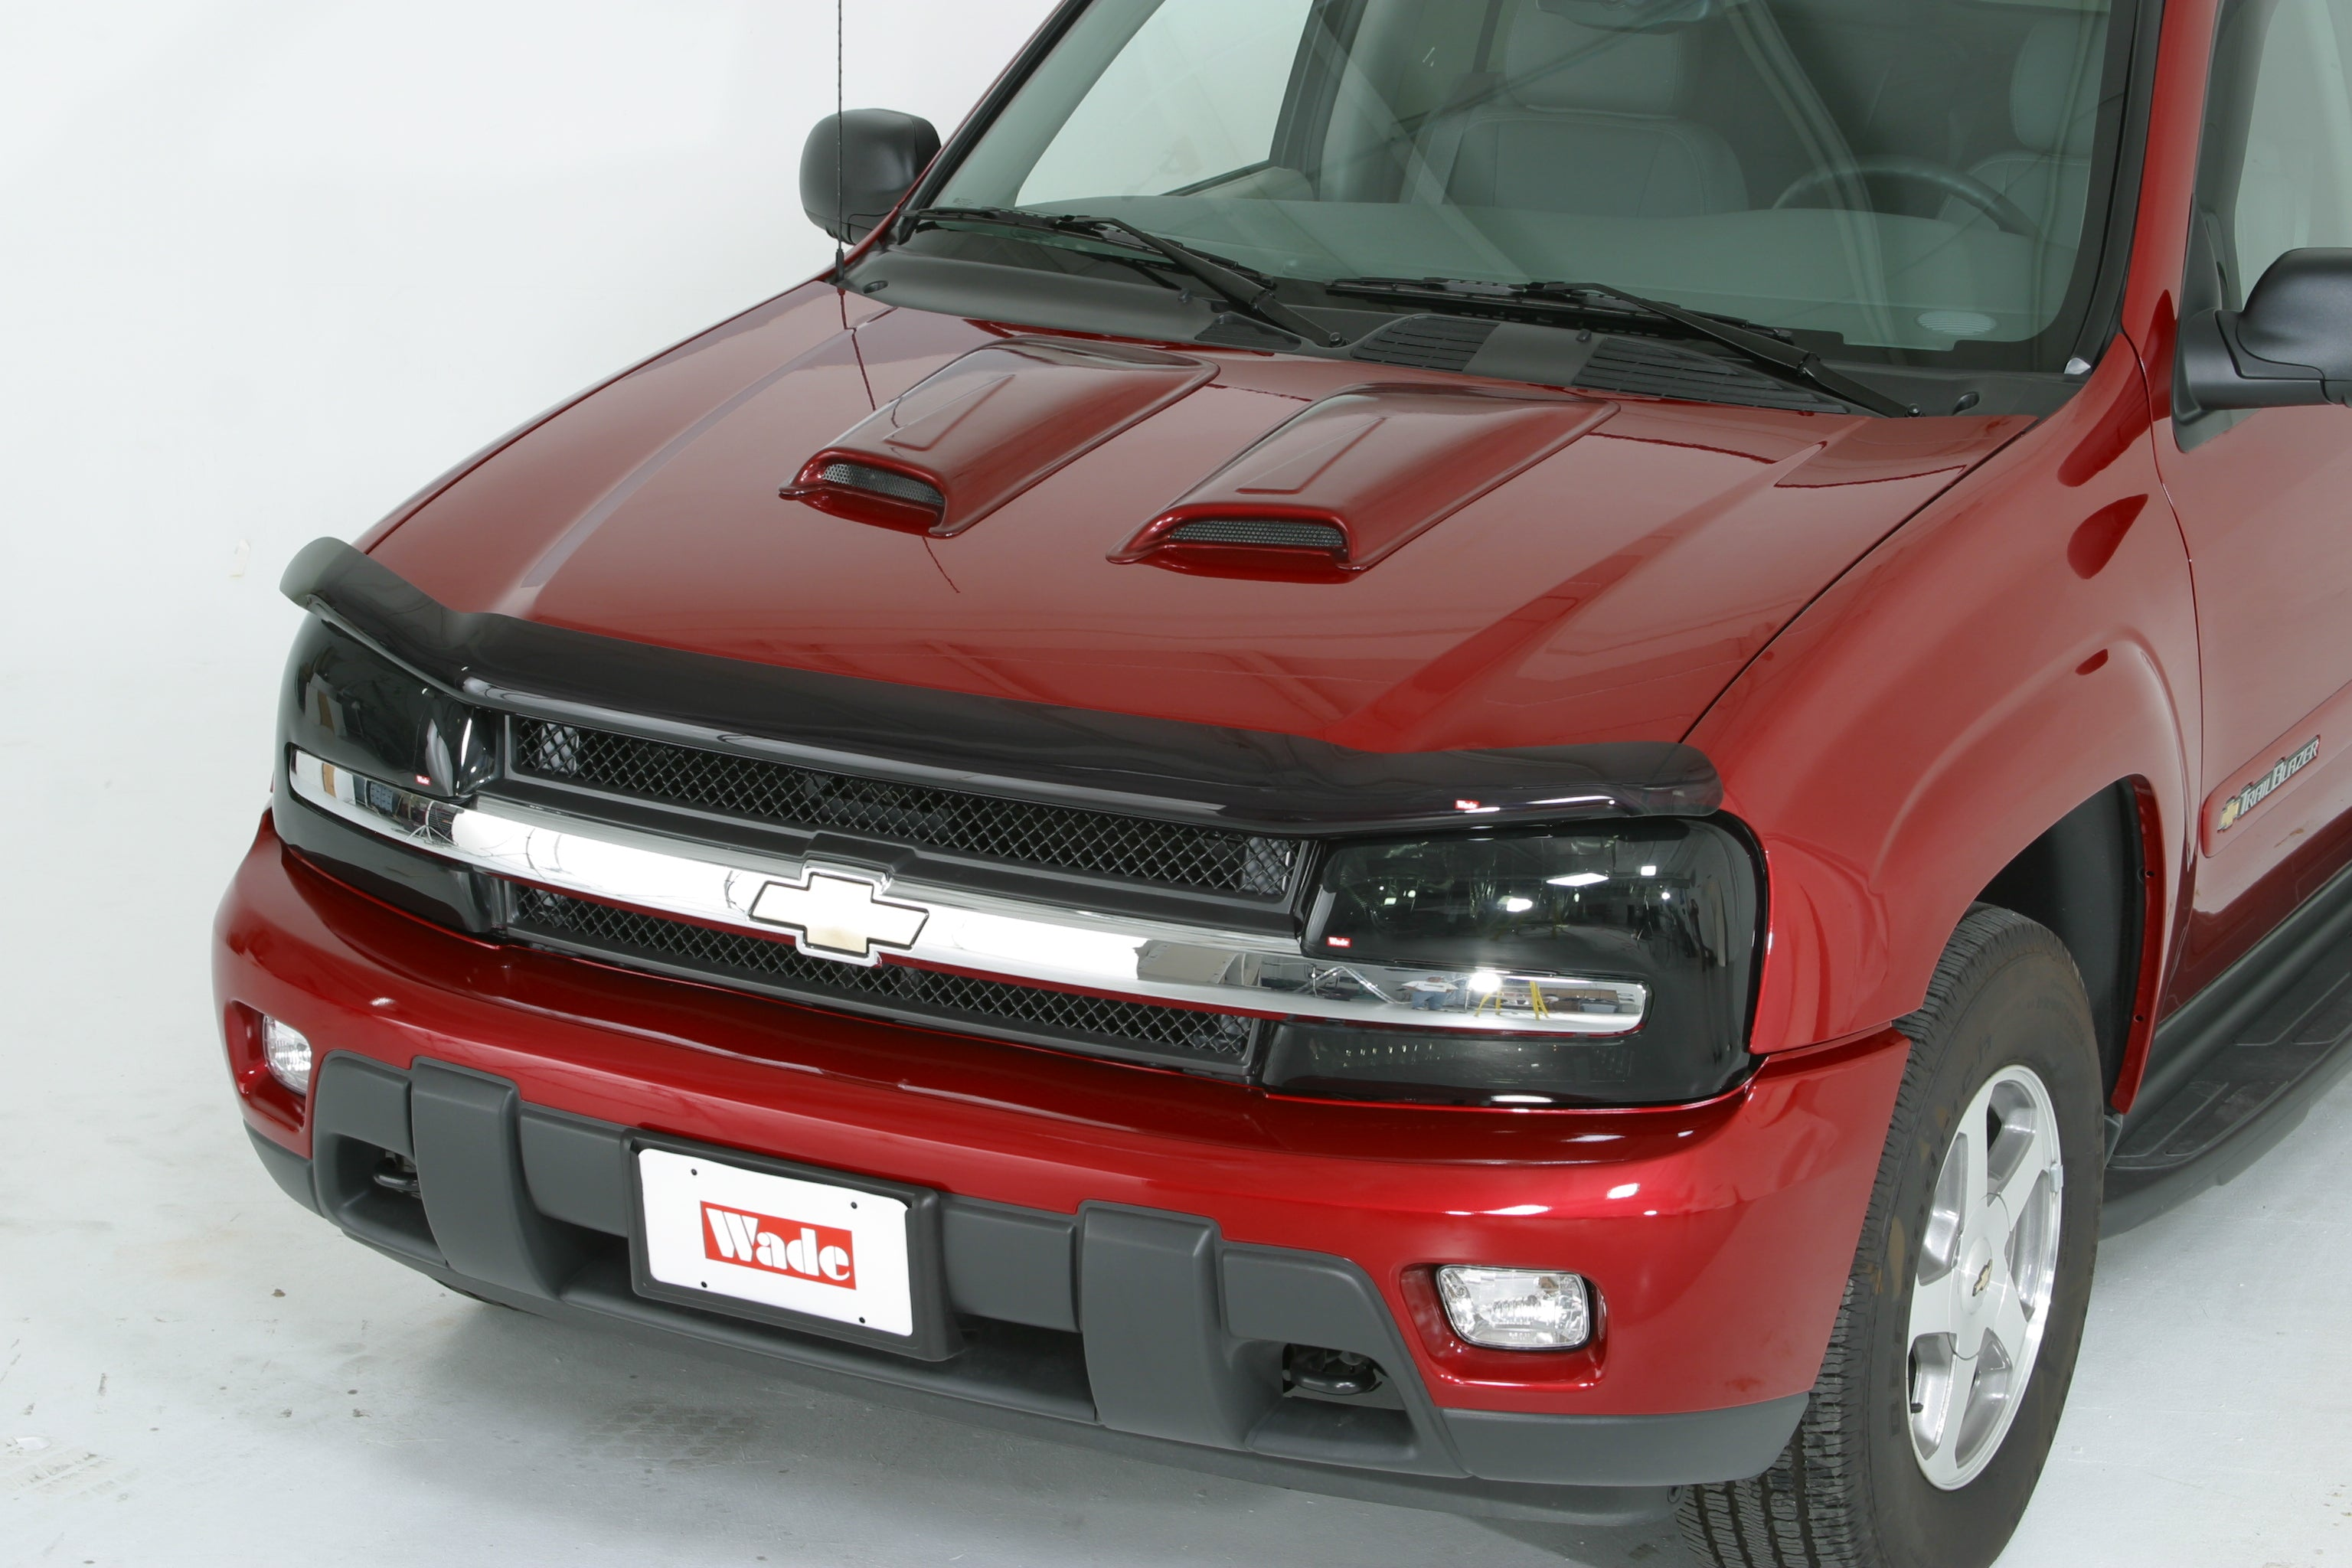 1987 Nissan Pickup 2WD (recessed light) Head Light Covers